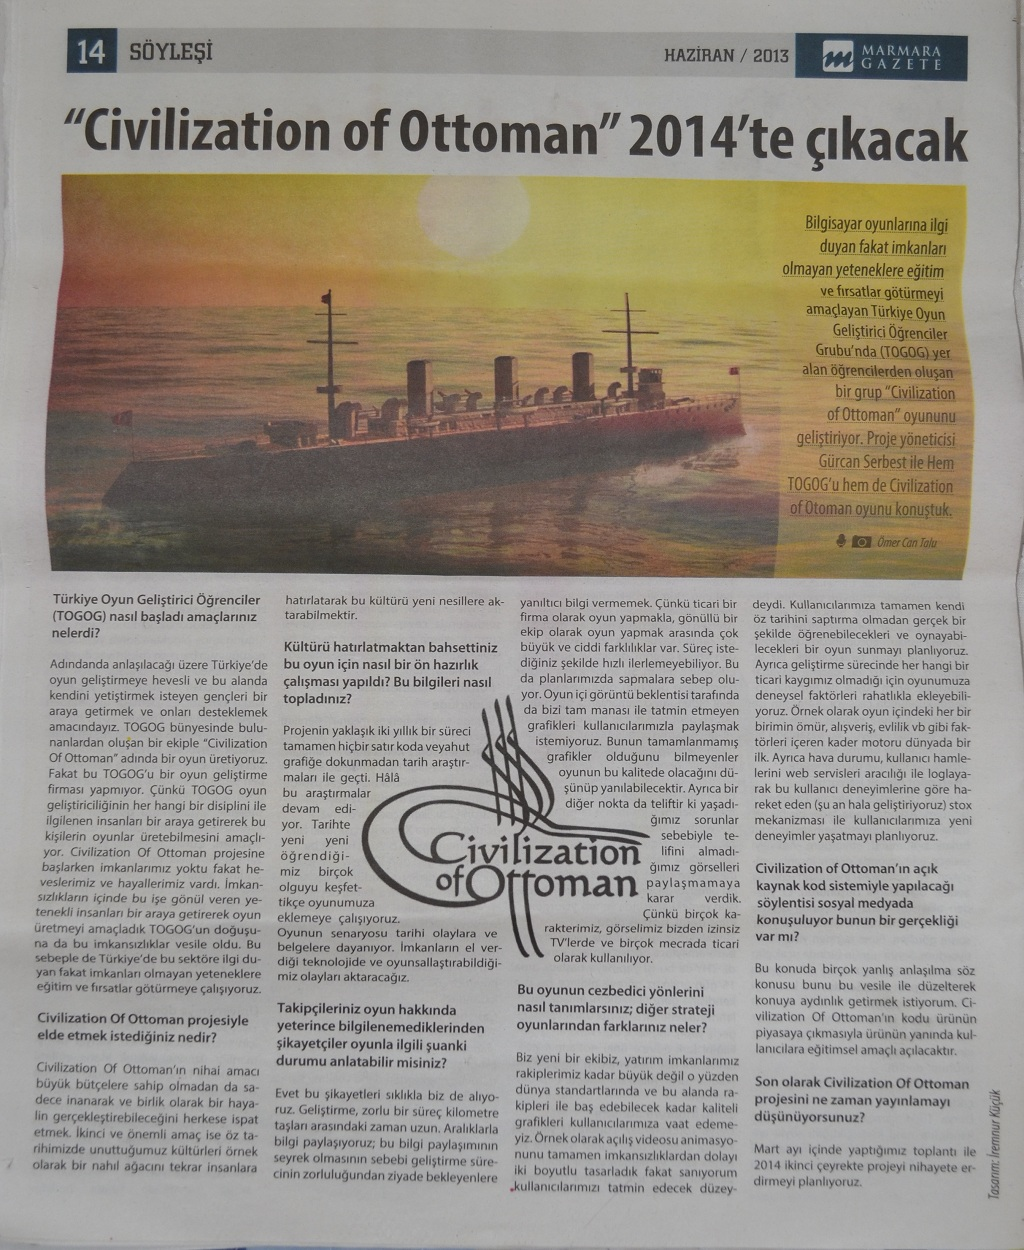 Civilization of Ottoman GAZETE